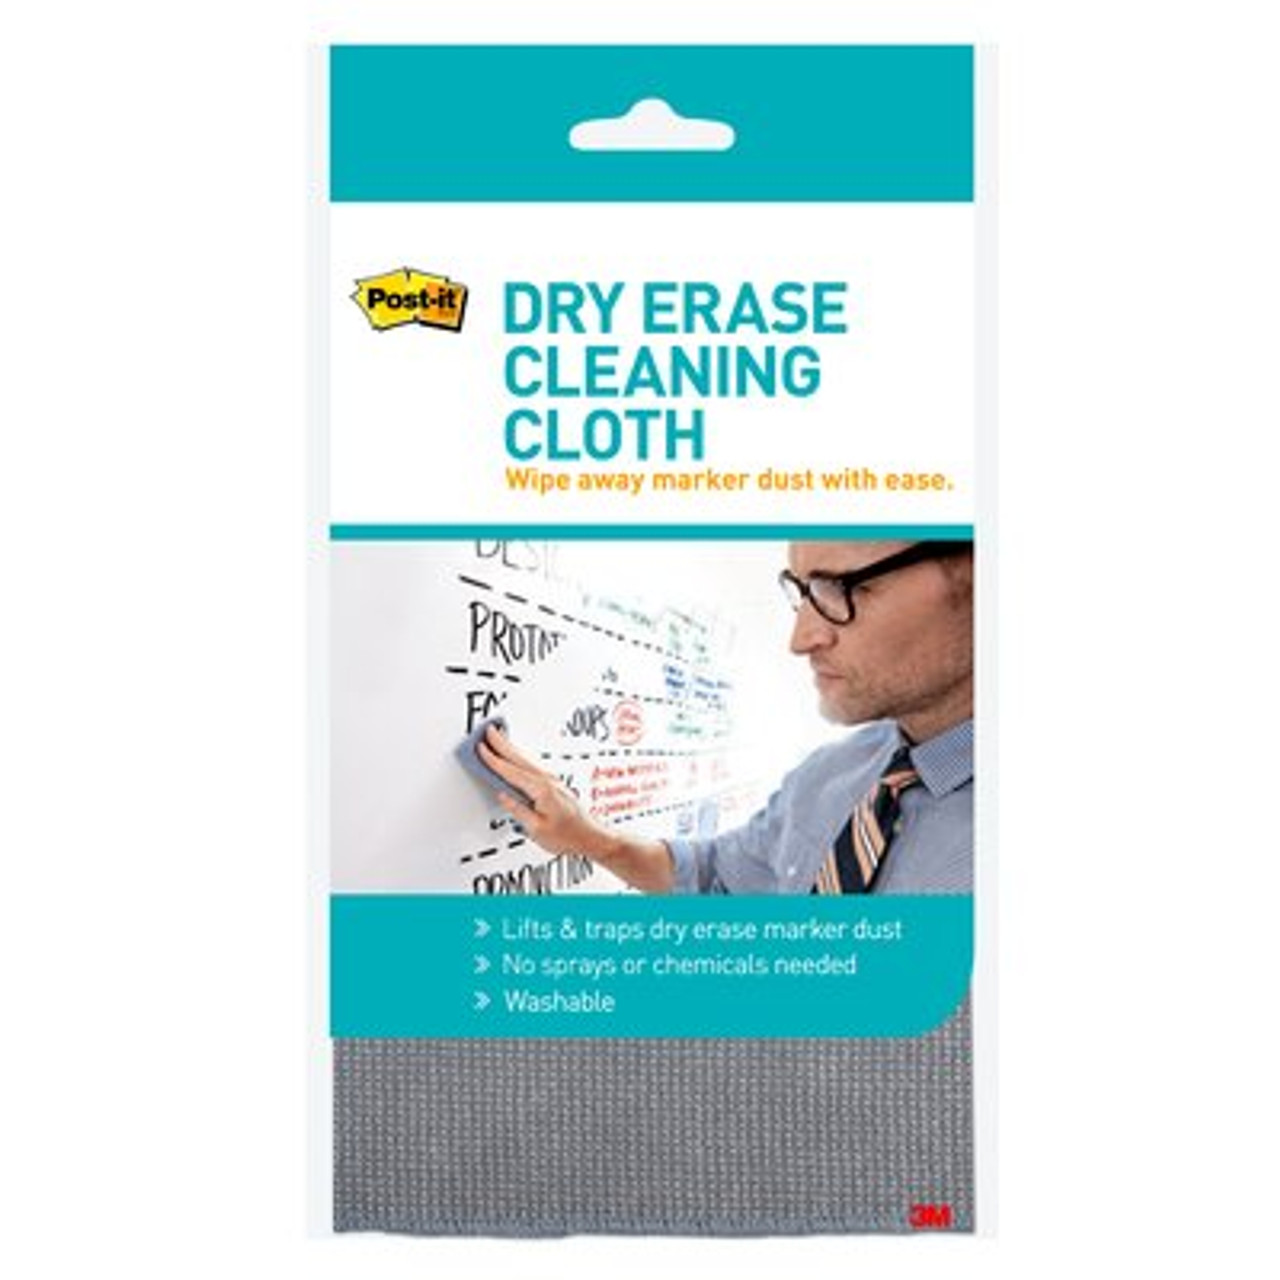 Post-it® Dry Erase Cleaning Cloth DEFCLOTH, 1 Cloth